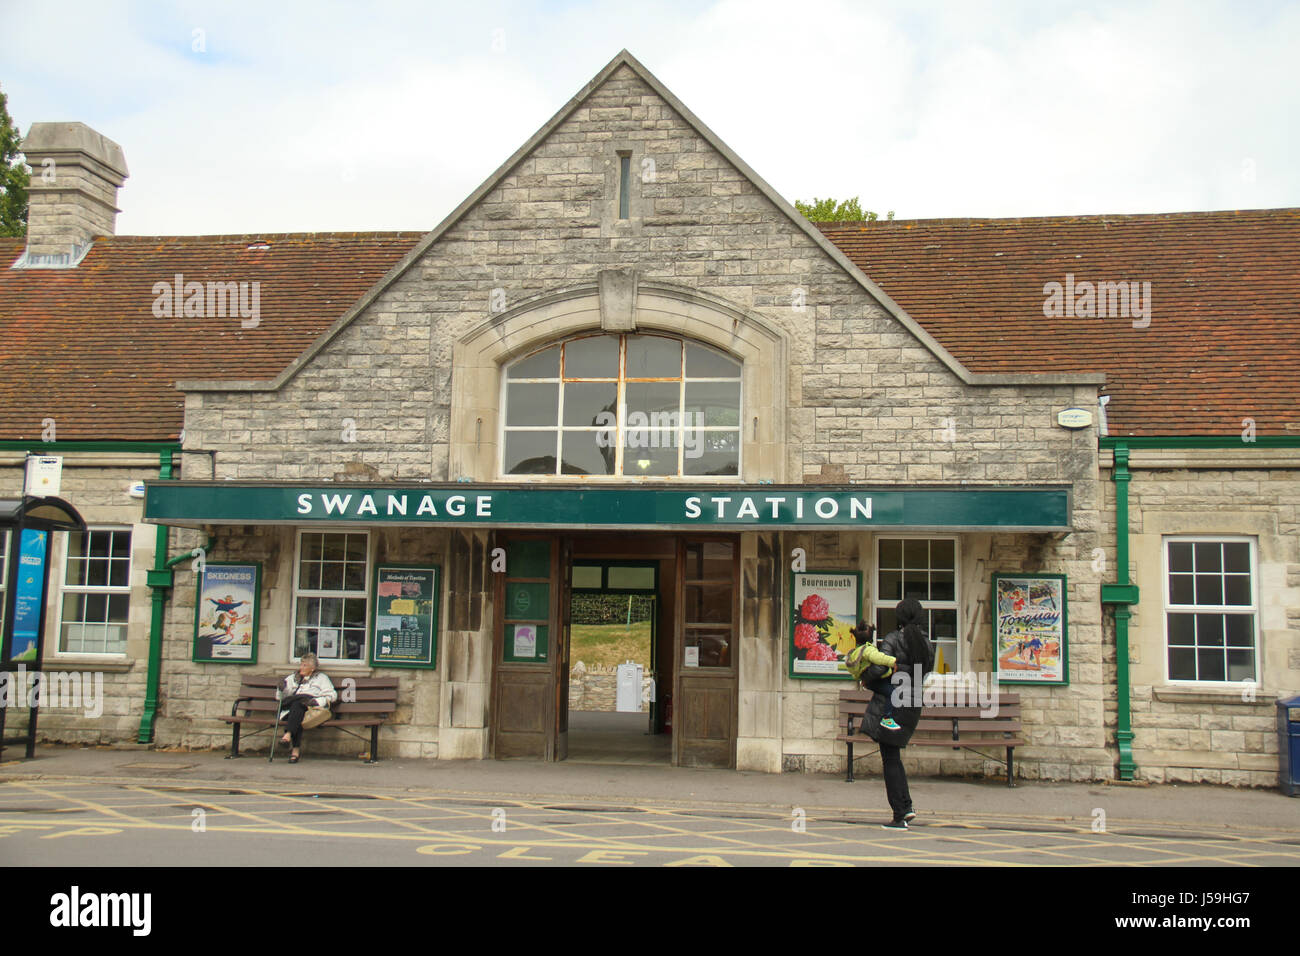 Swanage, UK -  12 May: The Swanage Staion entrance. The station serves teh Swanage steam railway service from Swanage - Stock Image